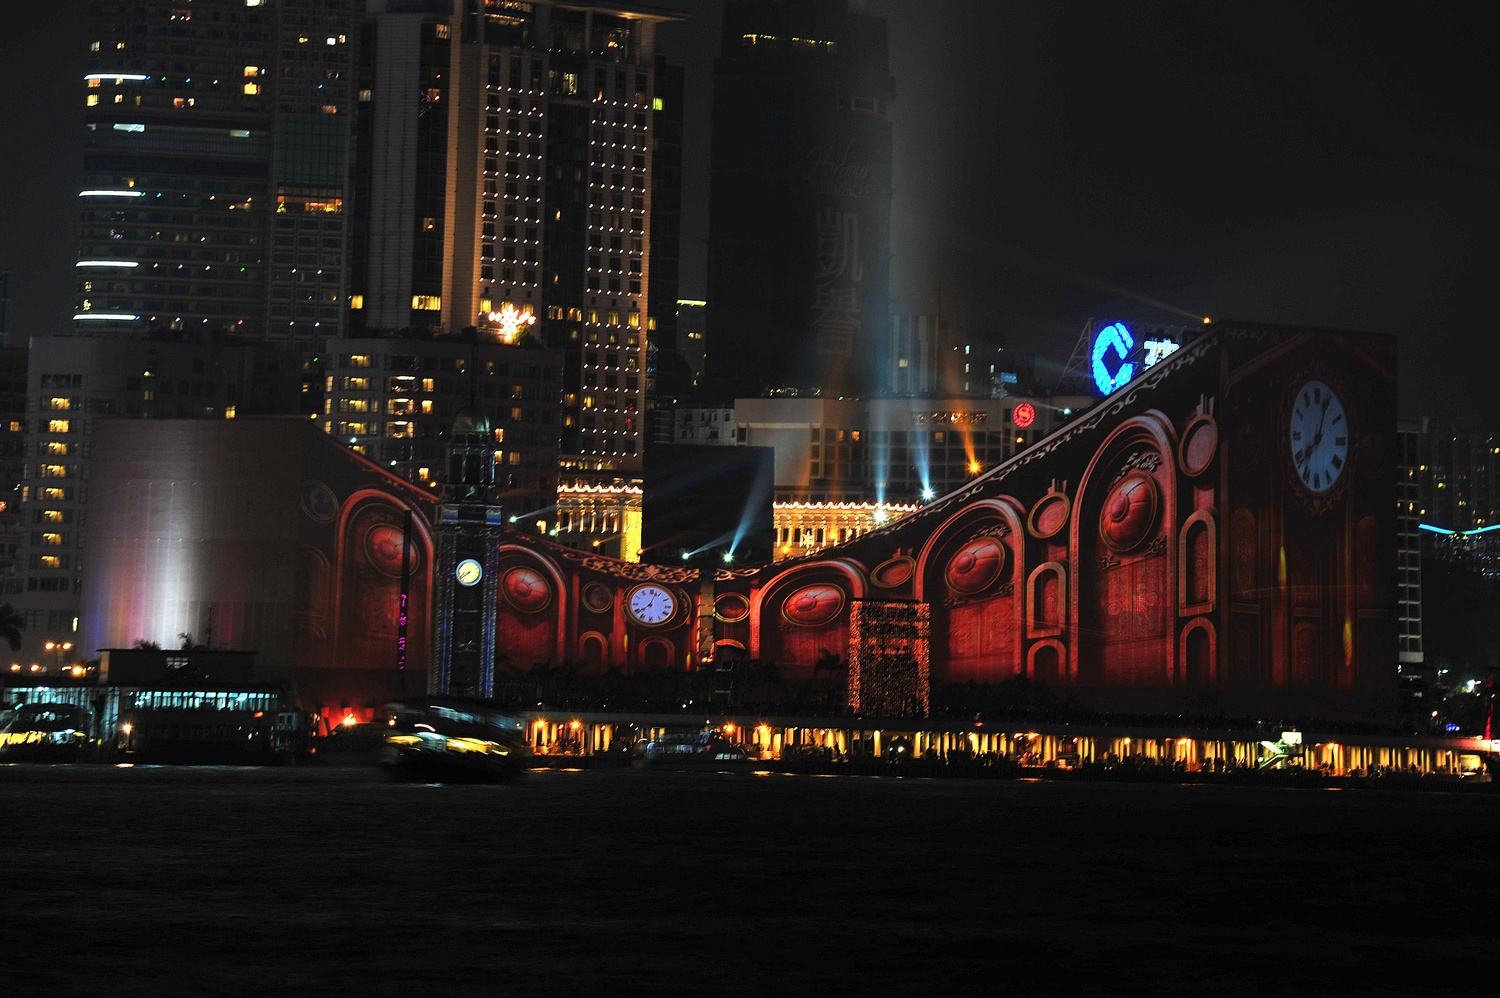 HK Cultural Centre at Night by Professor Une